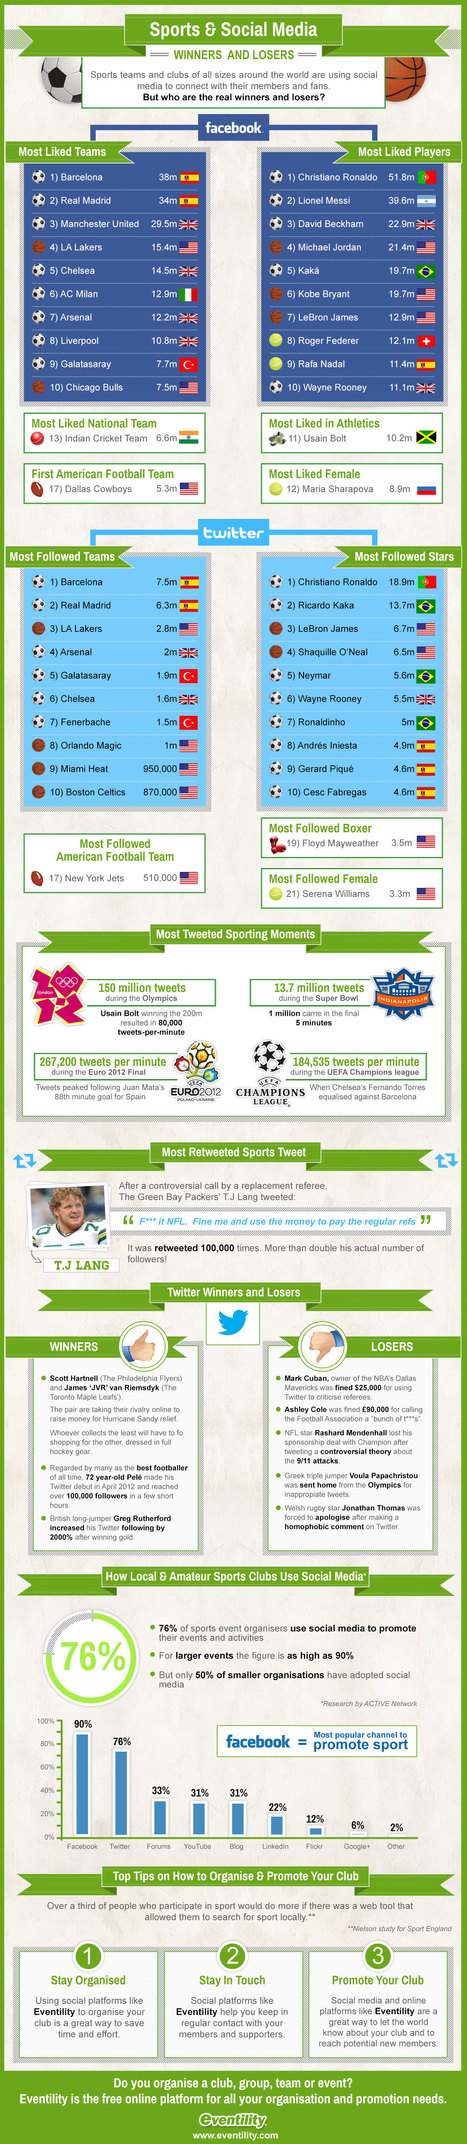 Social media and sports: winners and losers [infographic] | Advertising | Scoop.it